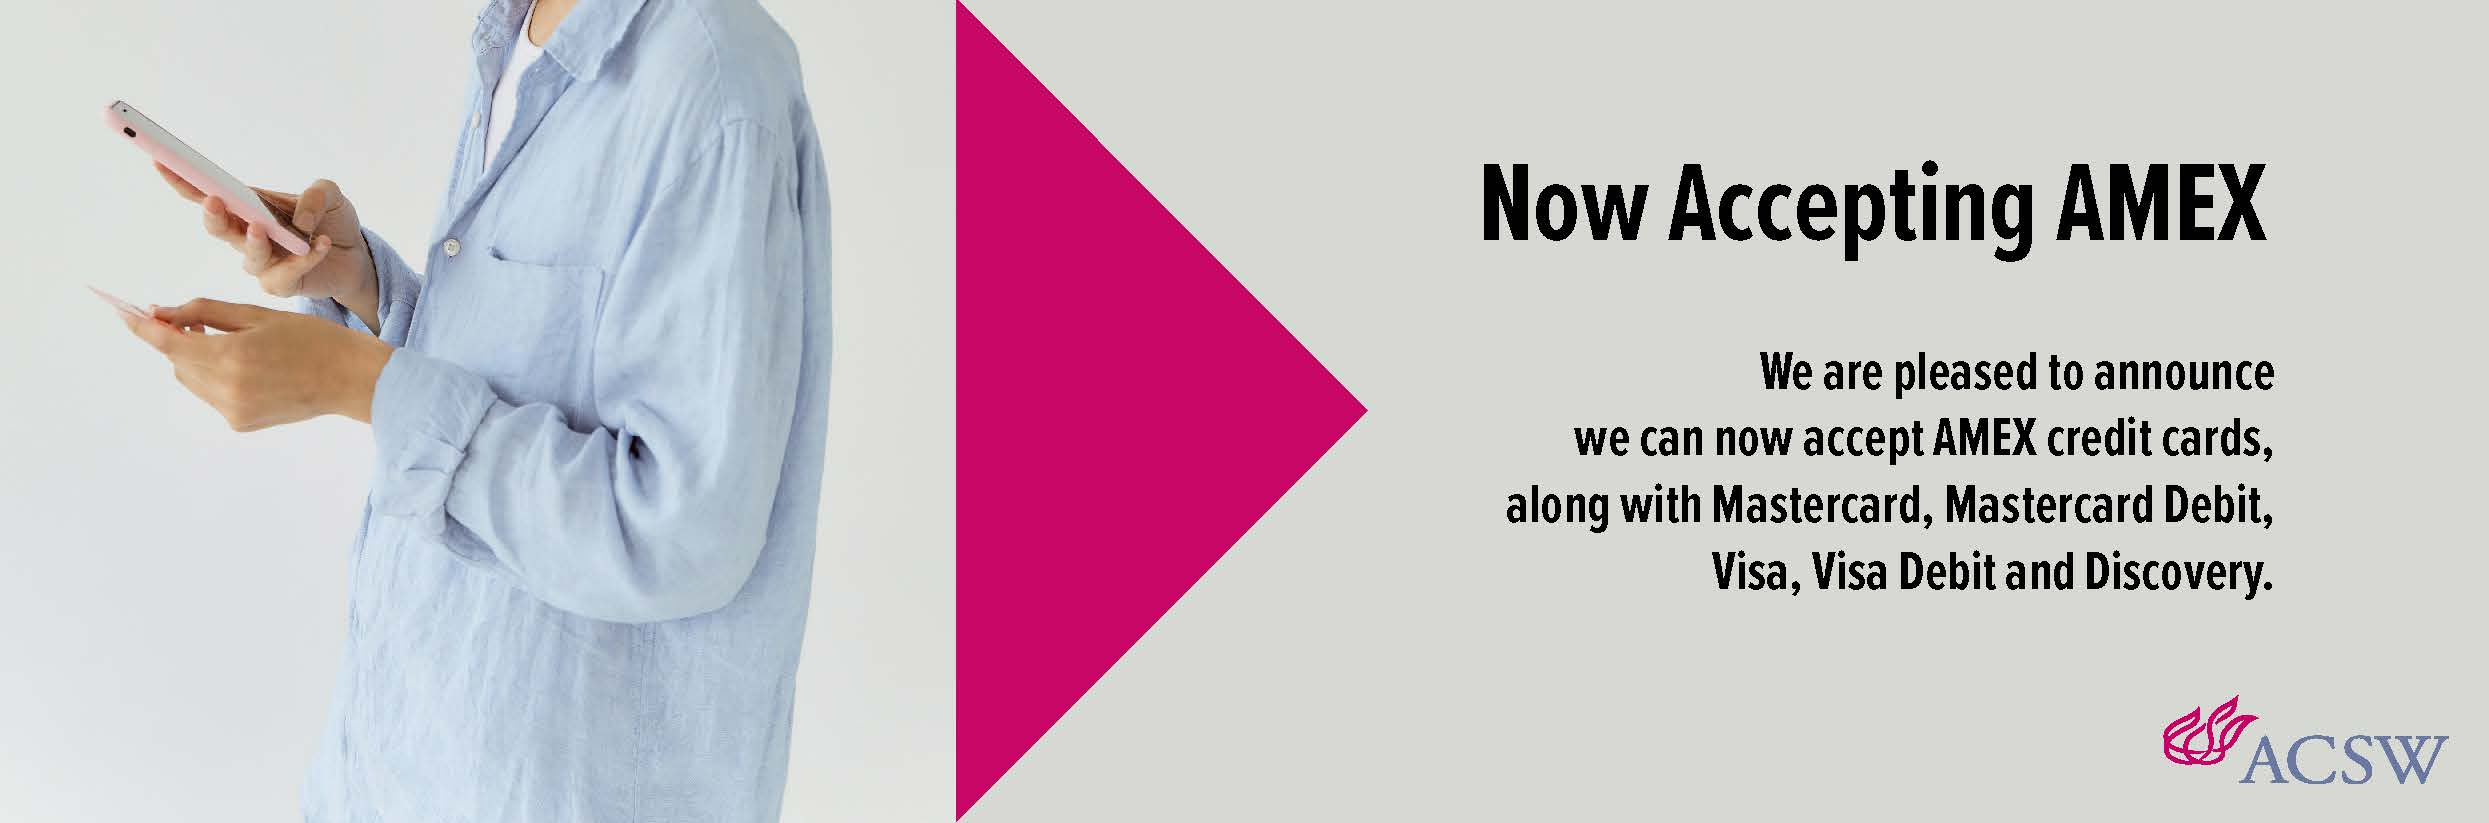 Practice Resources - ACSW